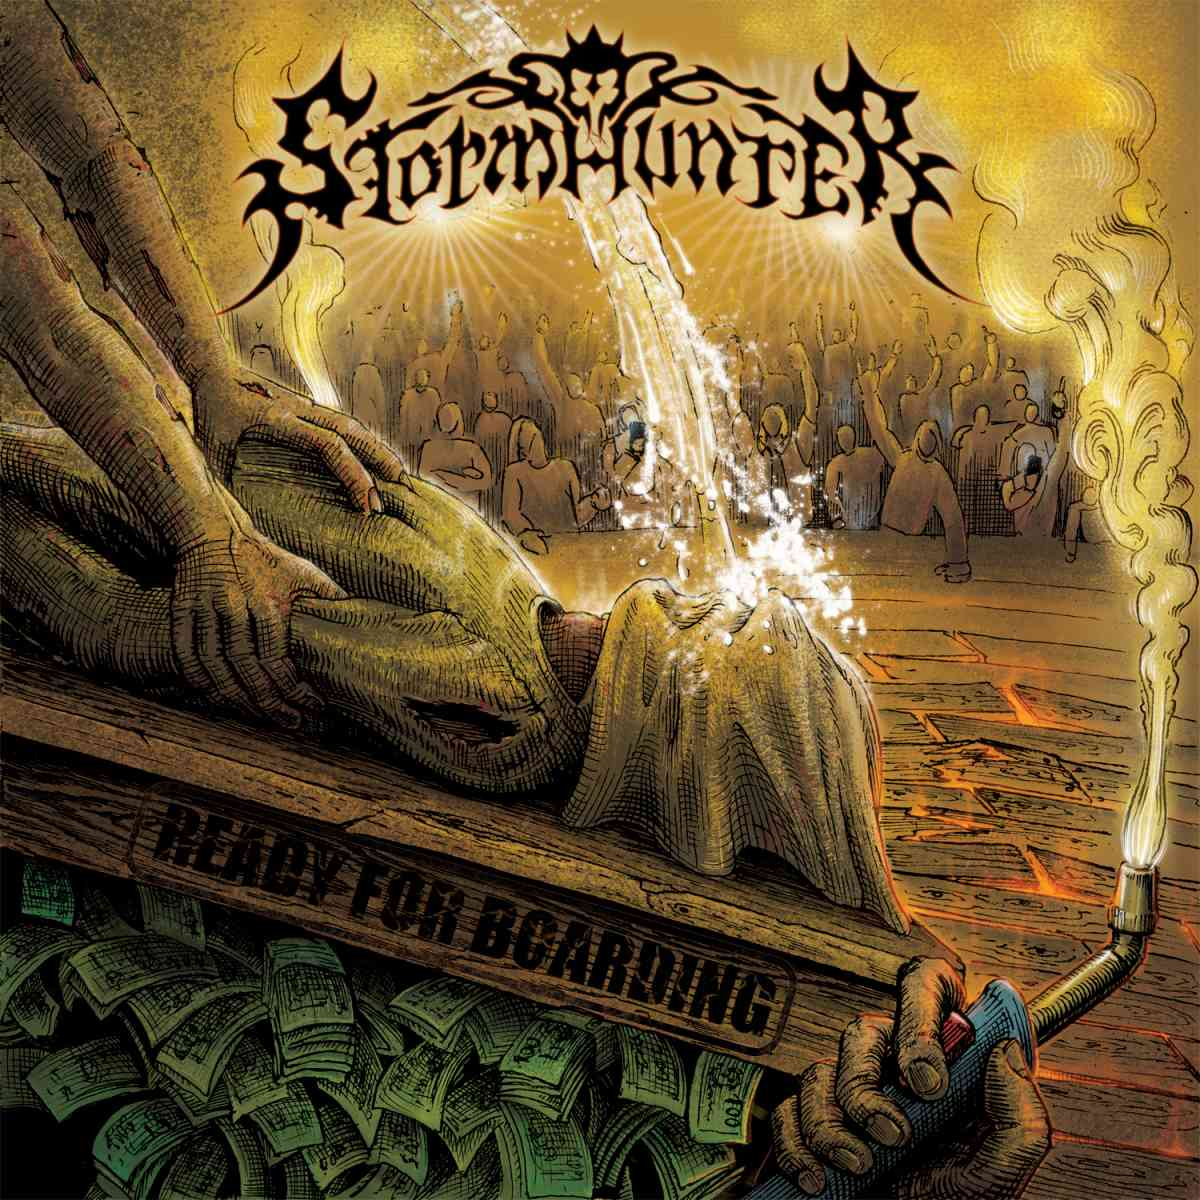 Stormhunter - ready for boarding - album cover